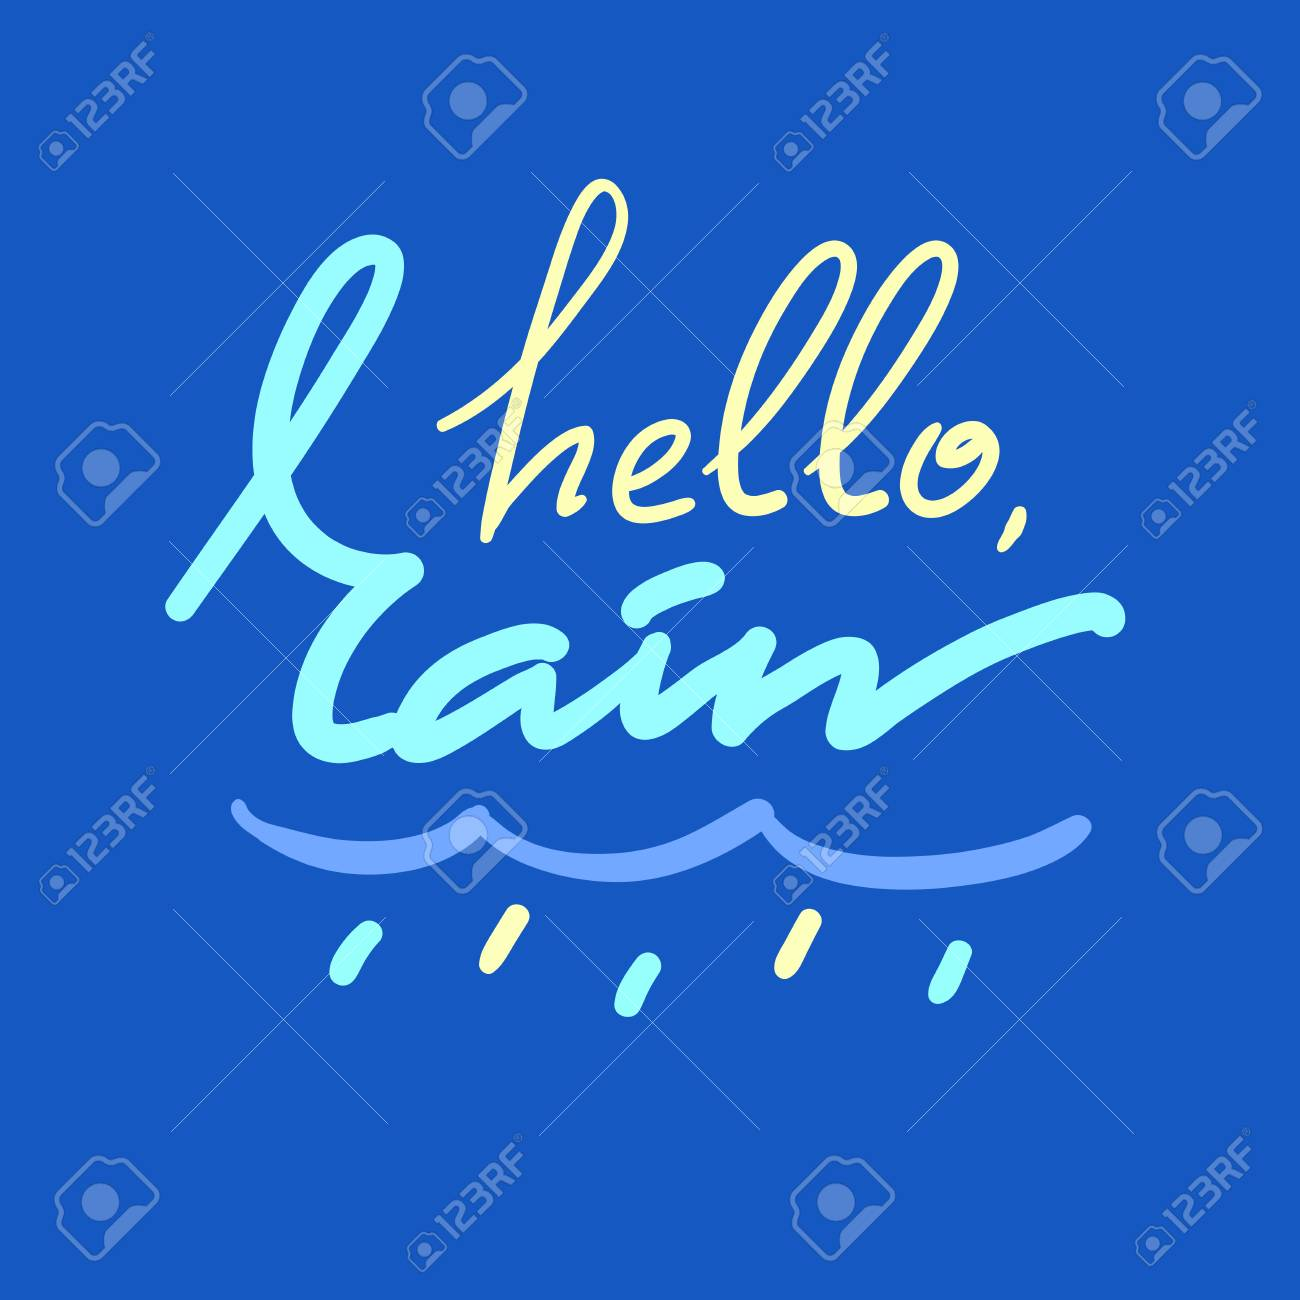 Hello Rain Simple Inspire And Motivational Quote Hand Drawn